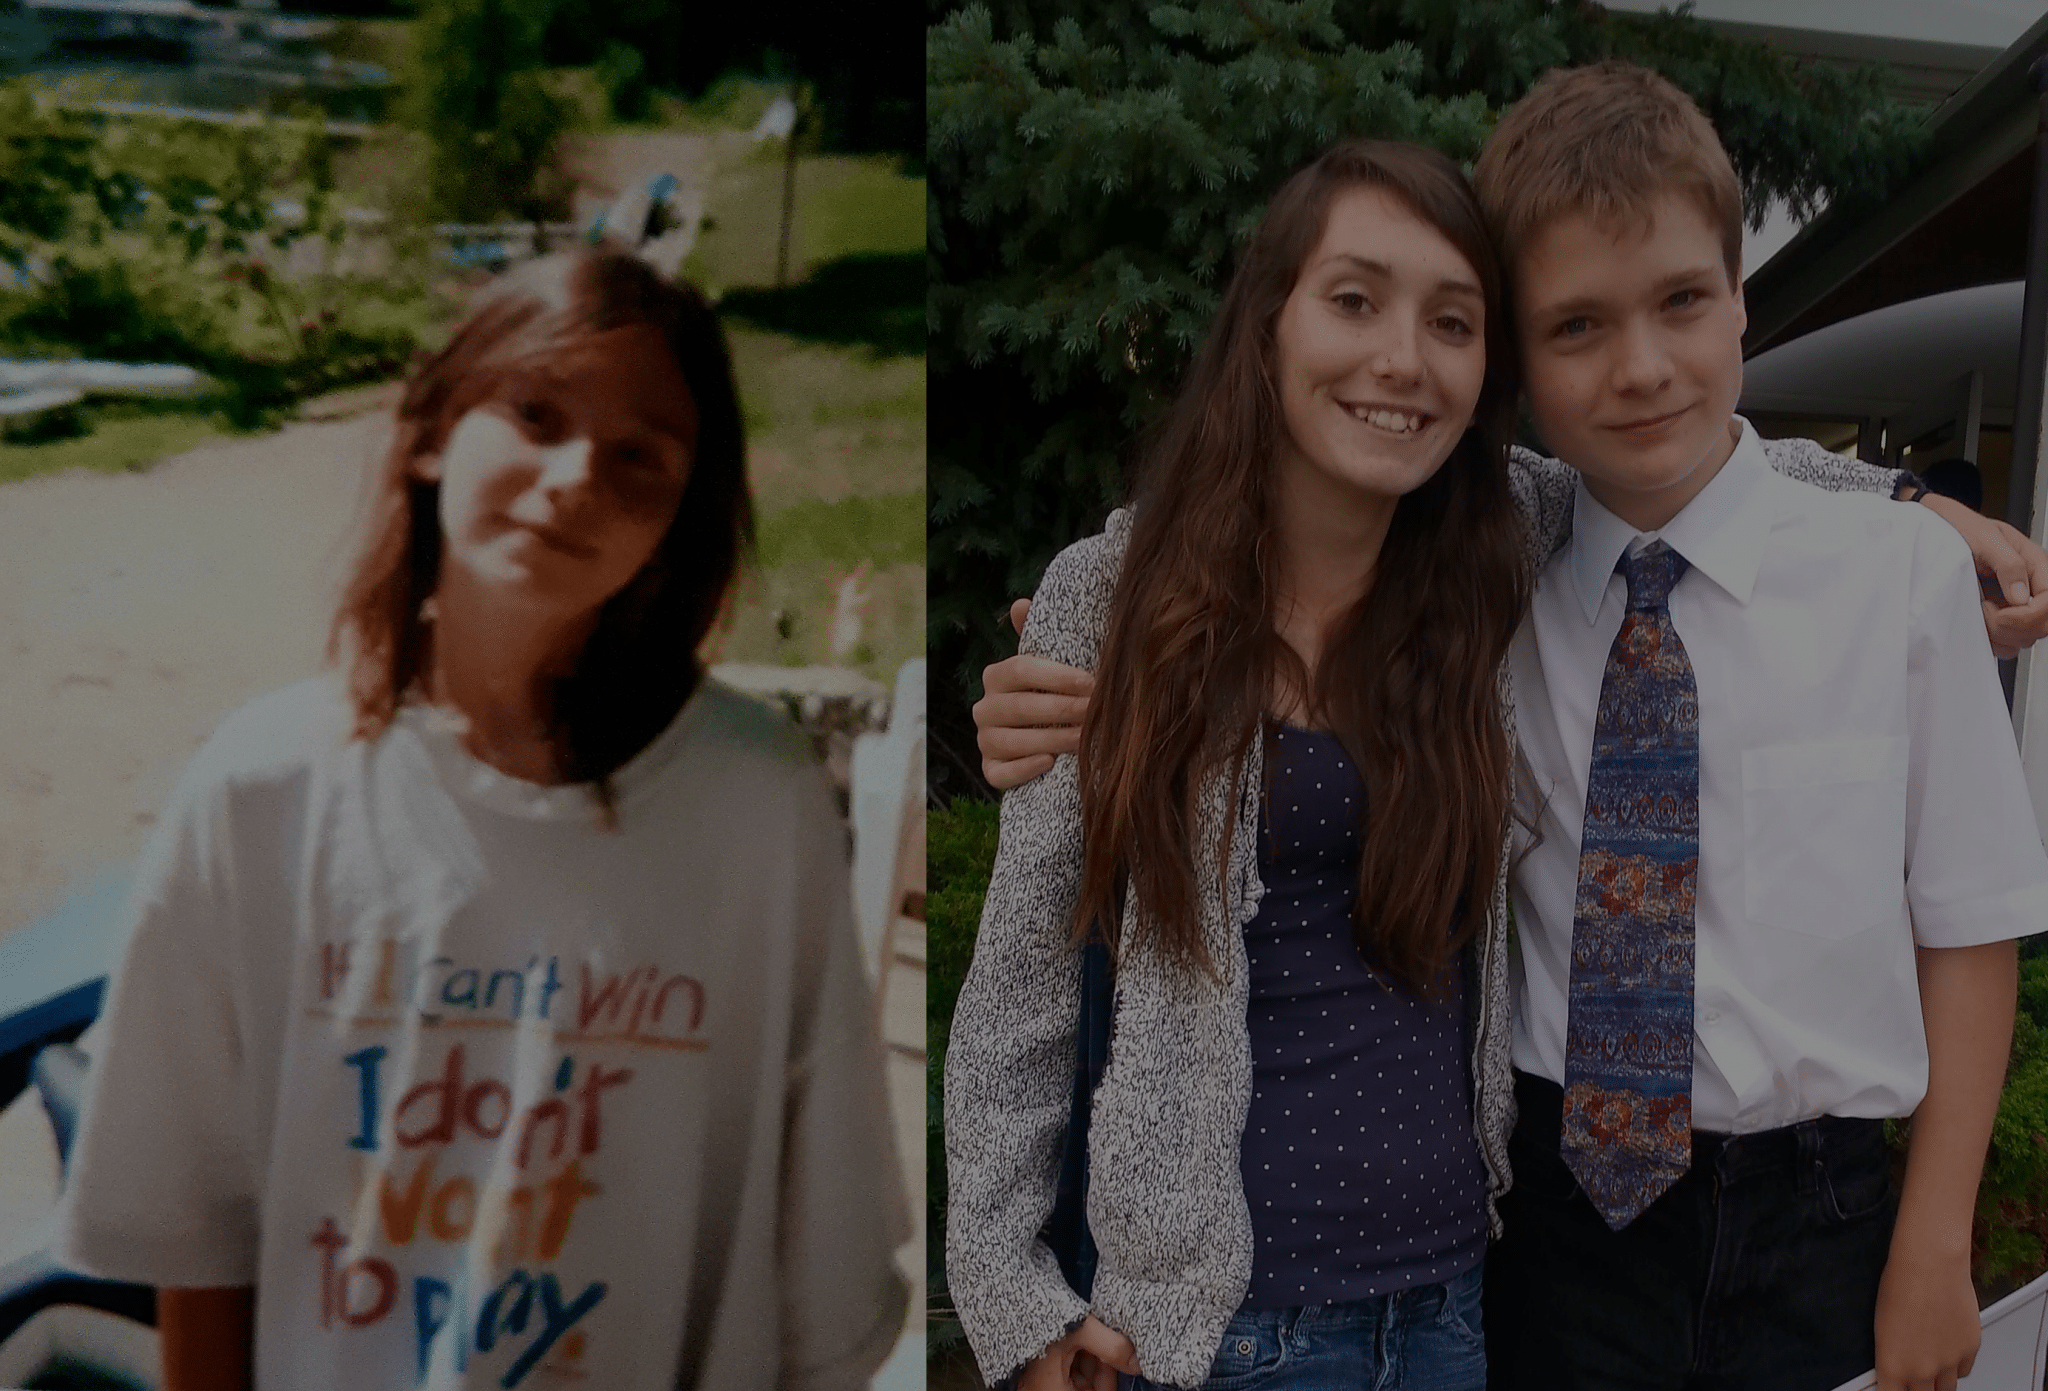 A young woman standing with her brother